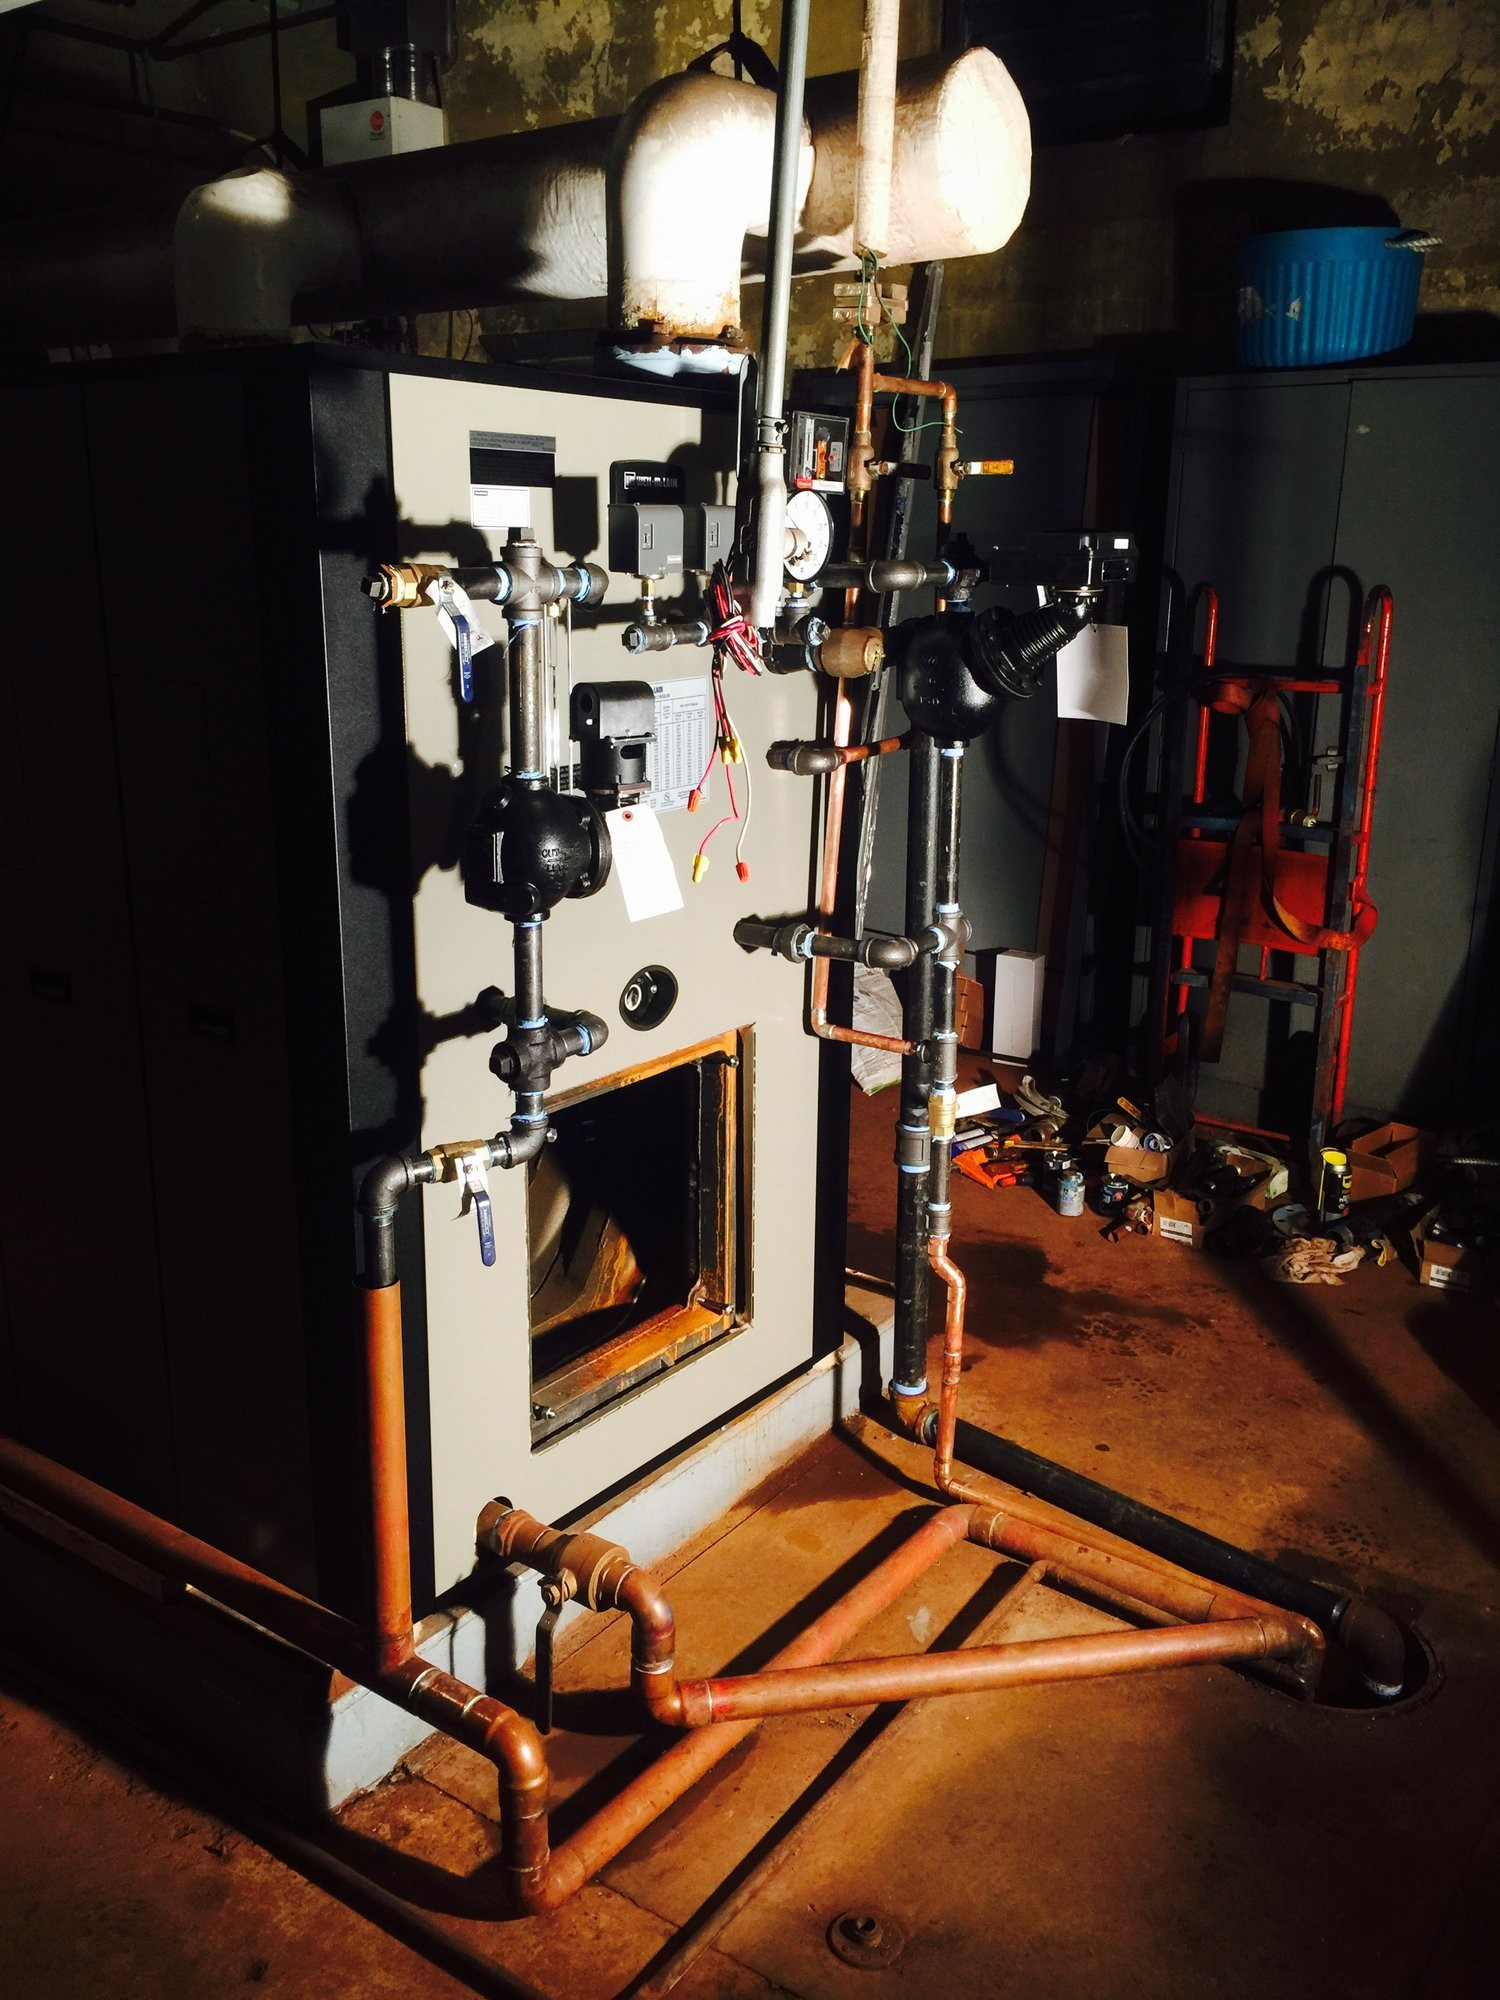 Gallery Propane Ct Propane Delivery Ct Heating Repair Ct